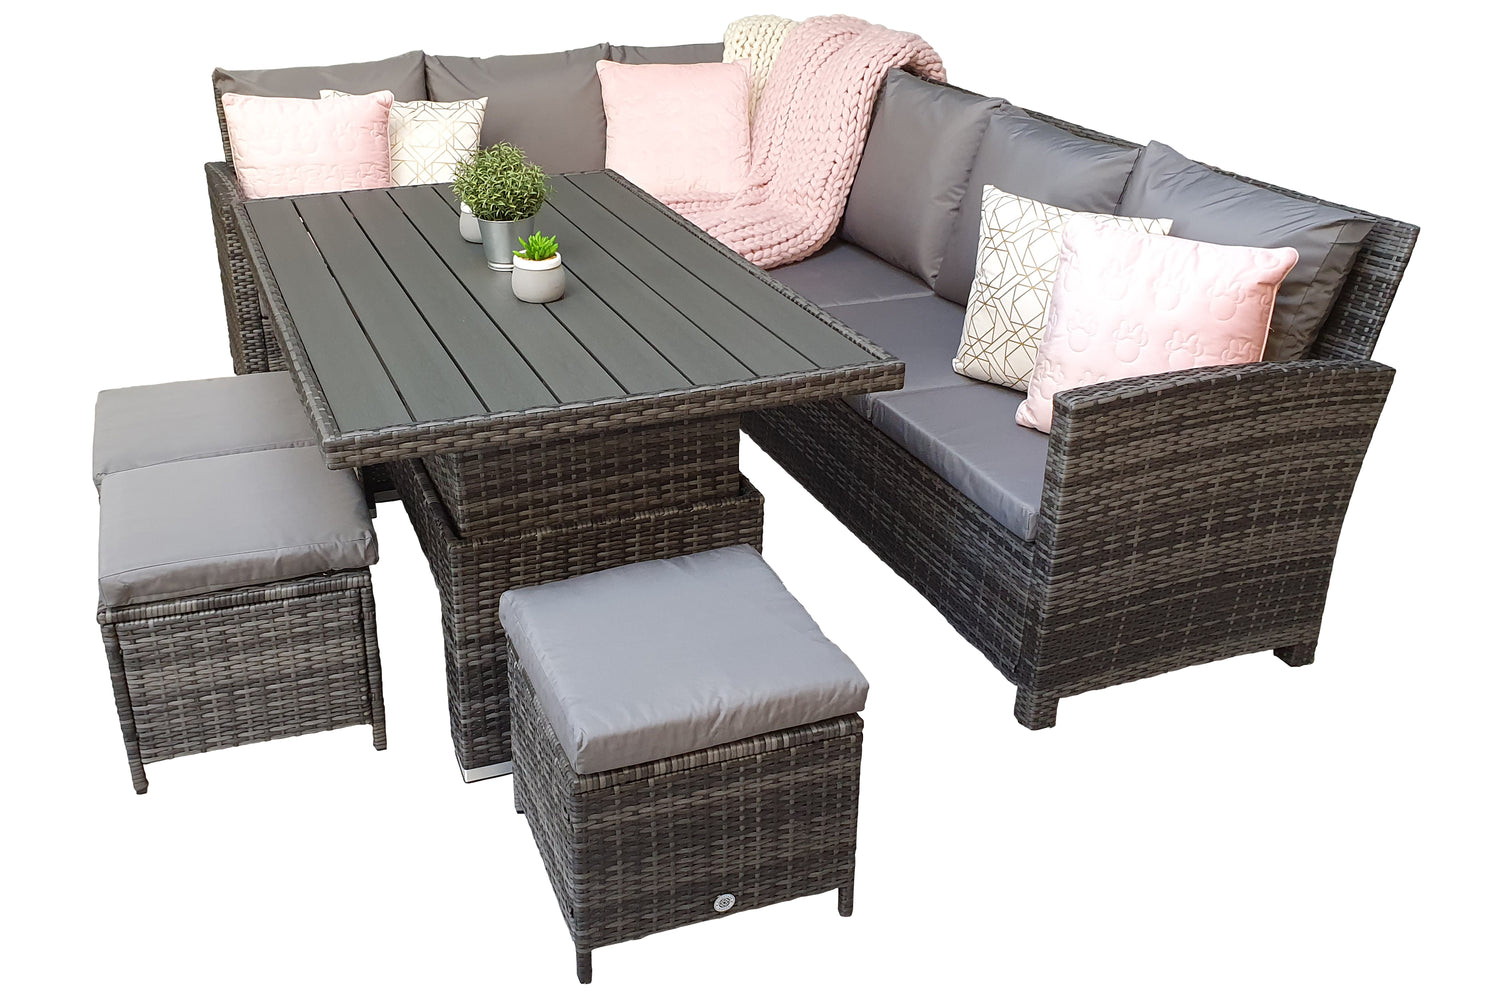 Charlotte Corner Sofa Dining Set with ADJUSTABLE Polywood Table Top in Grey - SOLD OUT